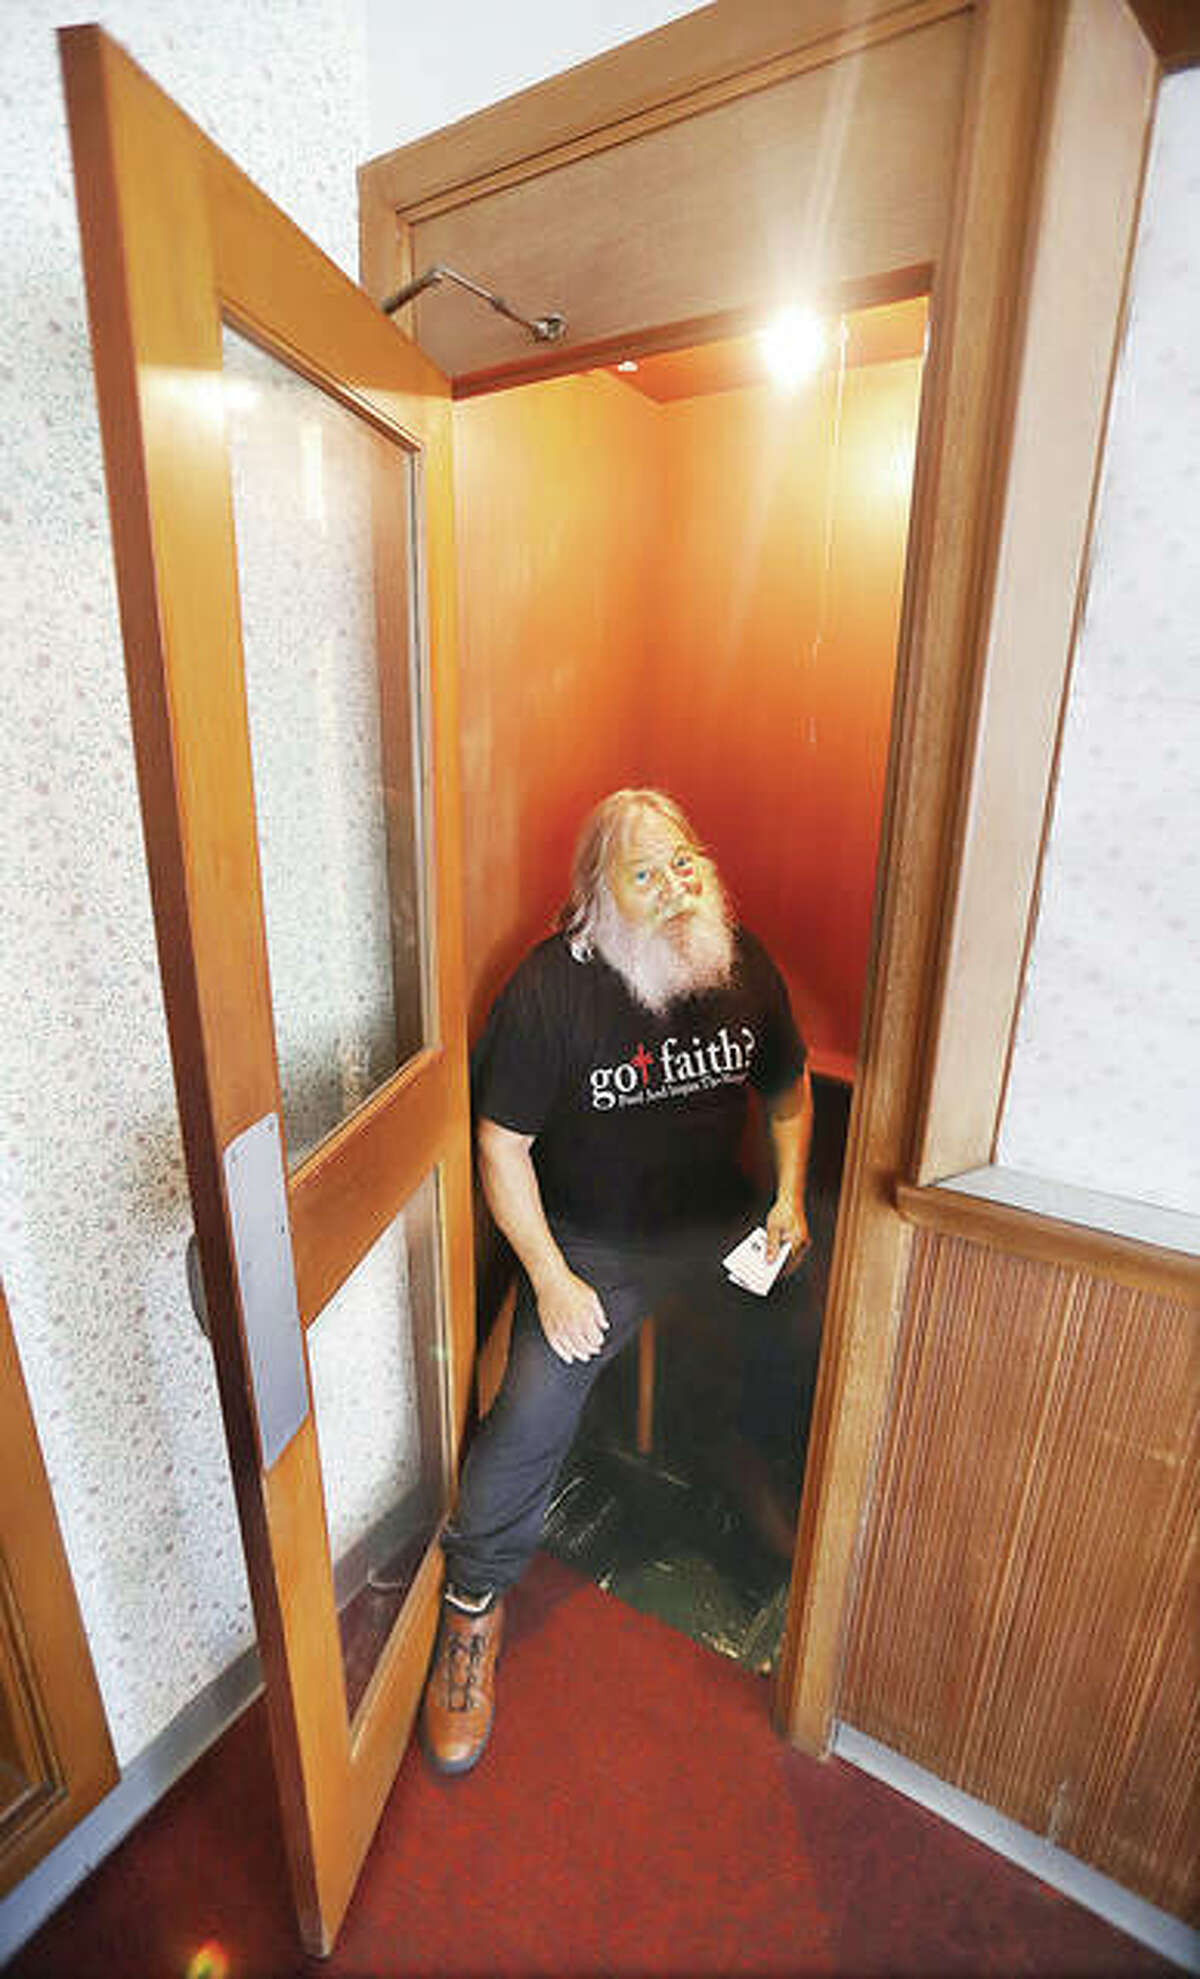 Steve Pegram sits in a phone booth in the corner of lobby of a donated building. Pegram said people remember the phone booth and ask him if it's still there. The phone has been removed, however.